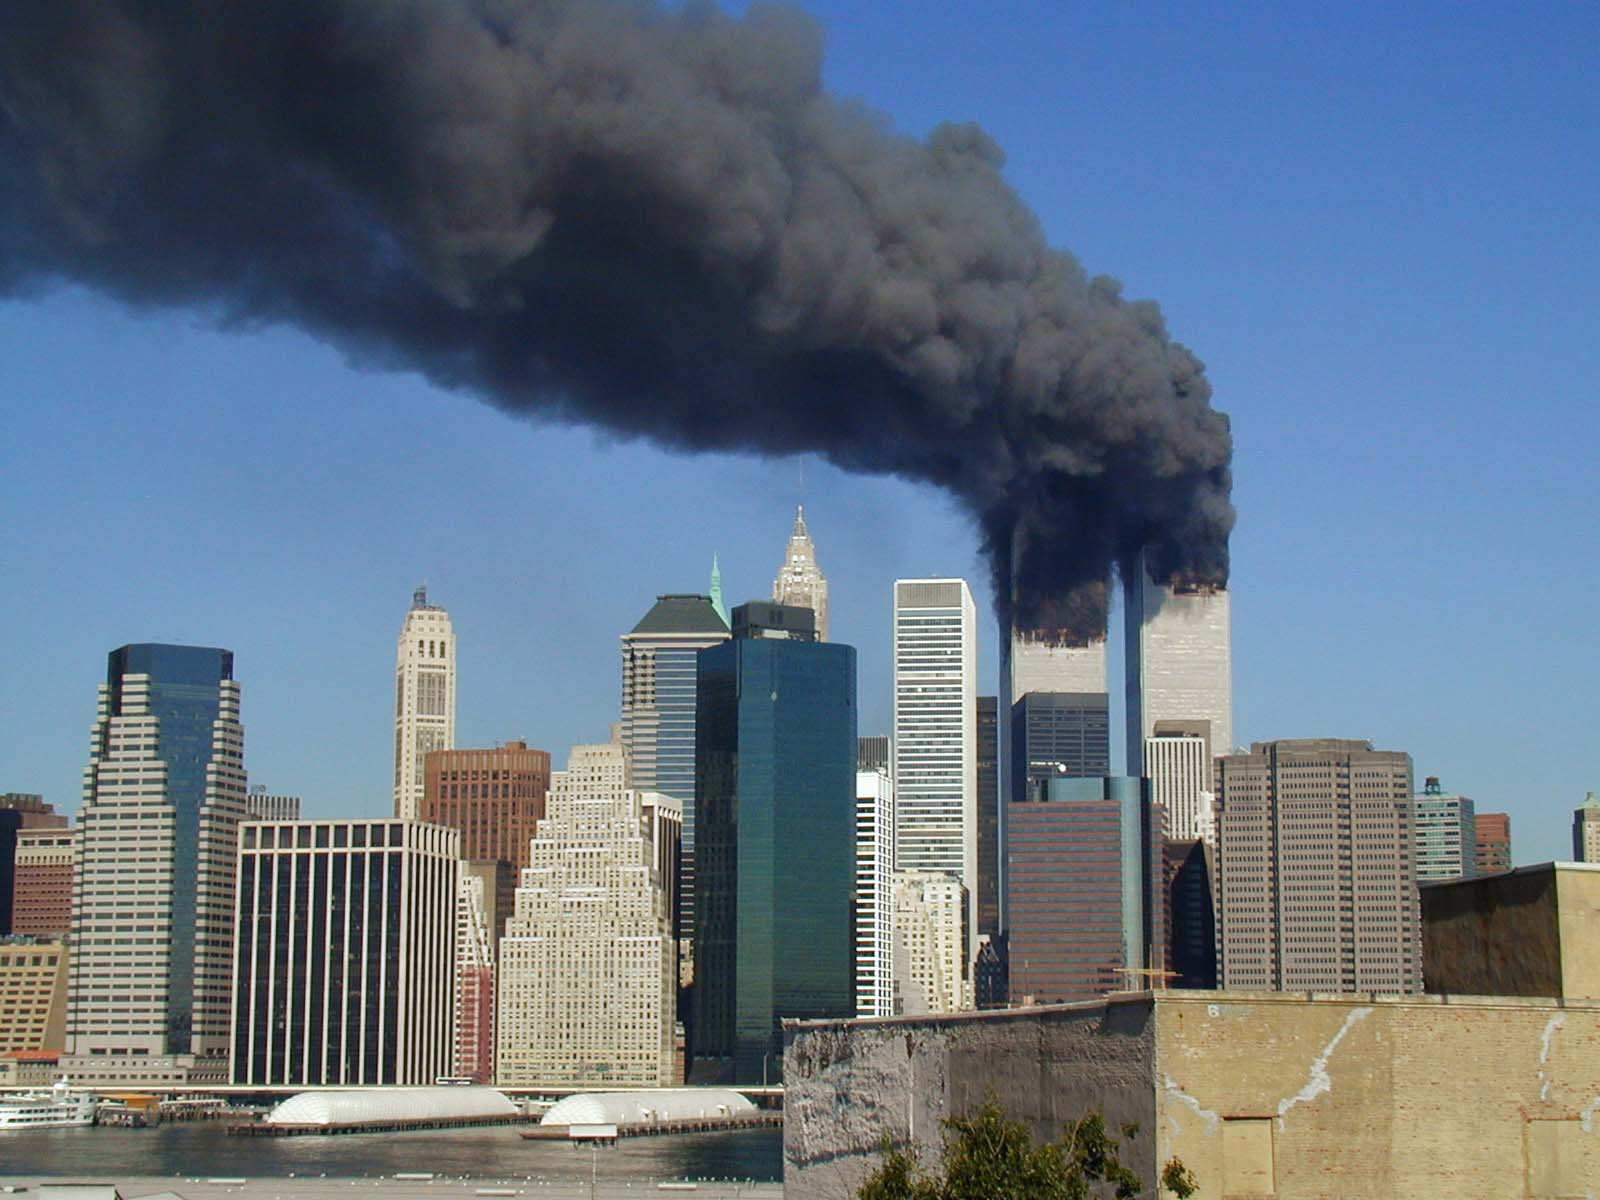 The demand for terrorism insurance surged after 9/11